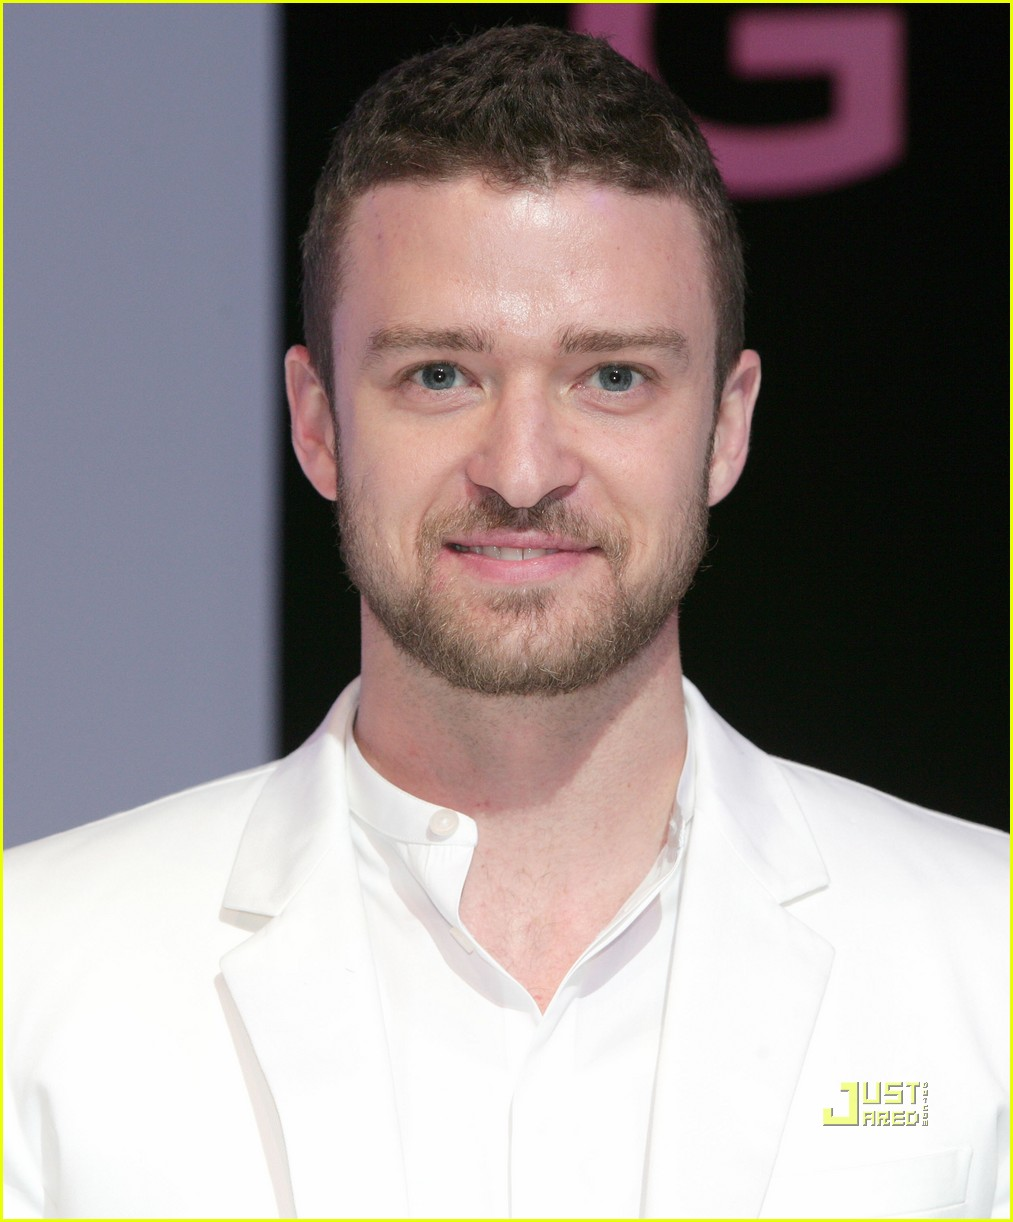 Pin does justin timberlake really kiss these lips on pinterest for Justin timberlake tattoos removed